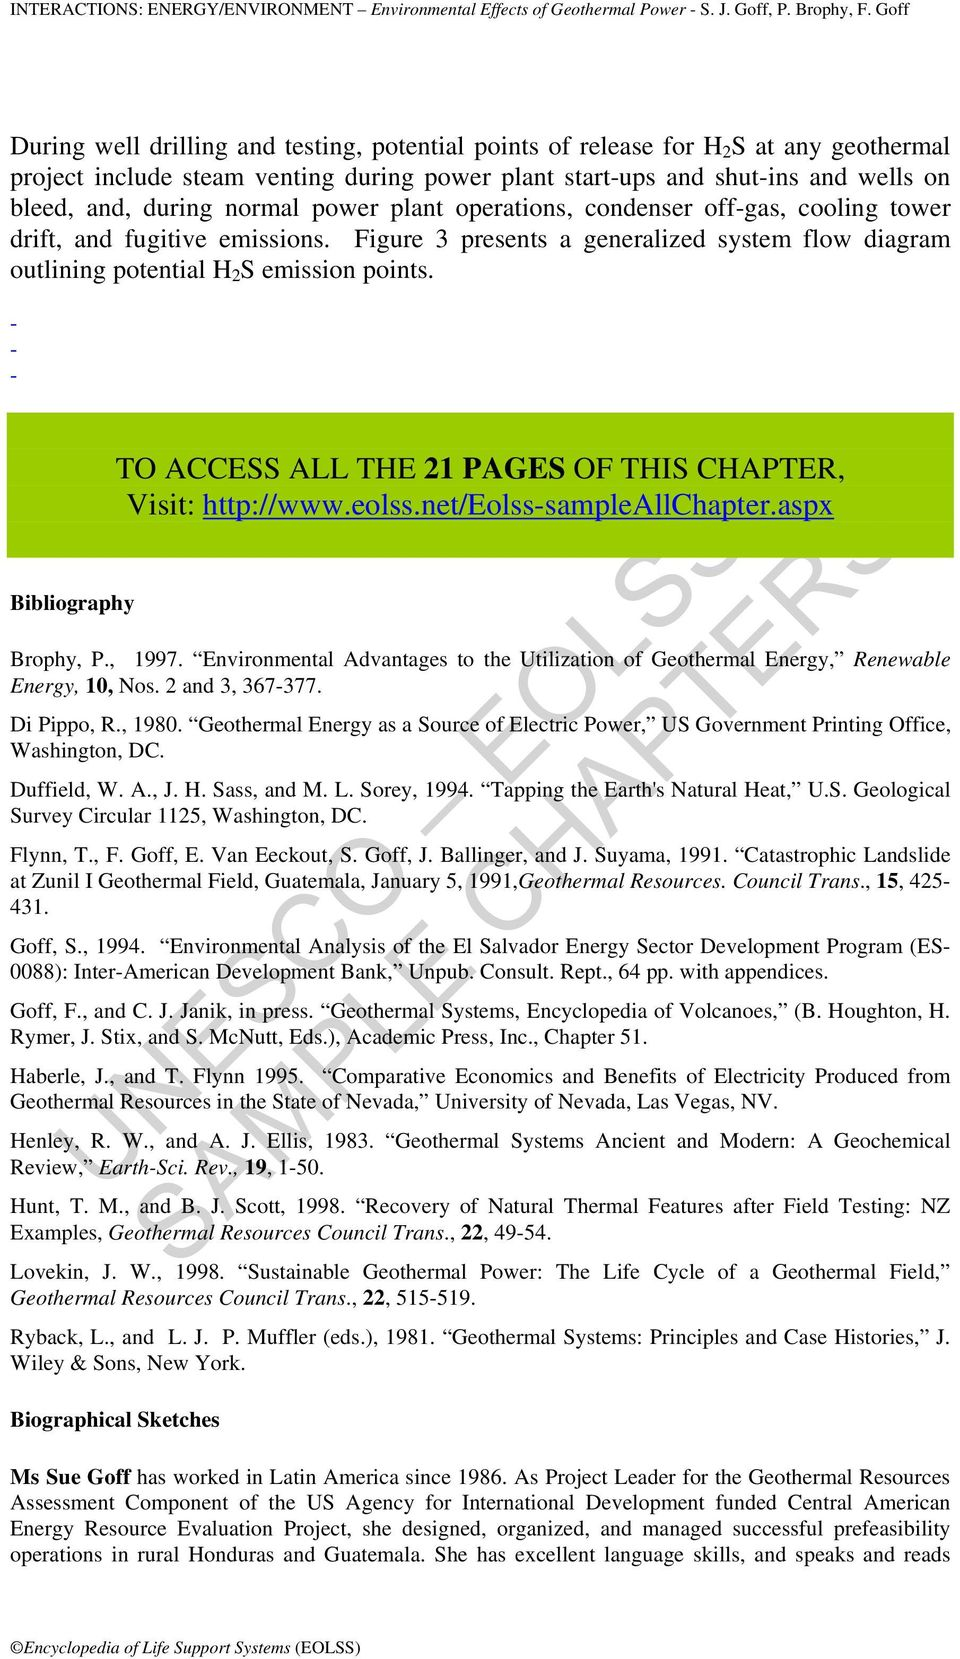 Interactions Energy Environment Environmental Effects Of Geothermal Power Plant Diagram Bibliography To Access All The 21 Pages This Chapter Visit